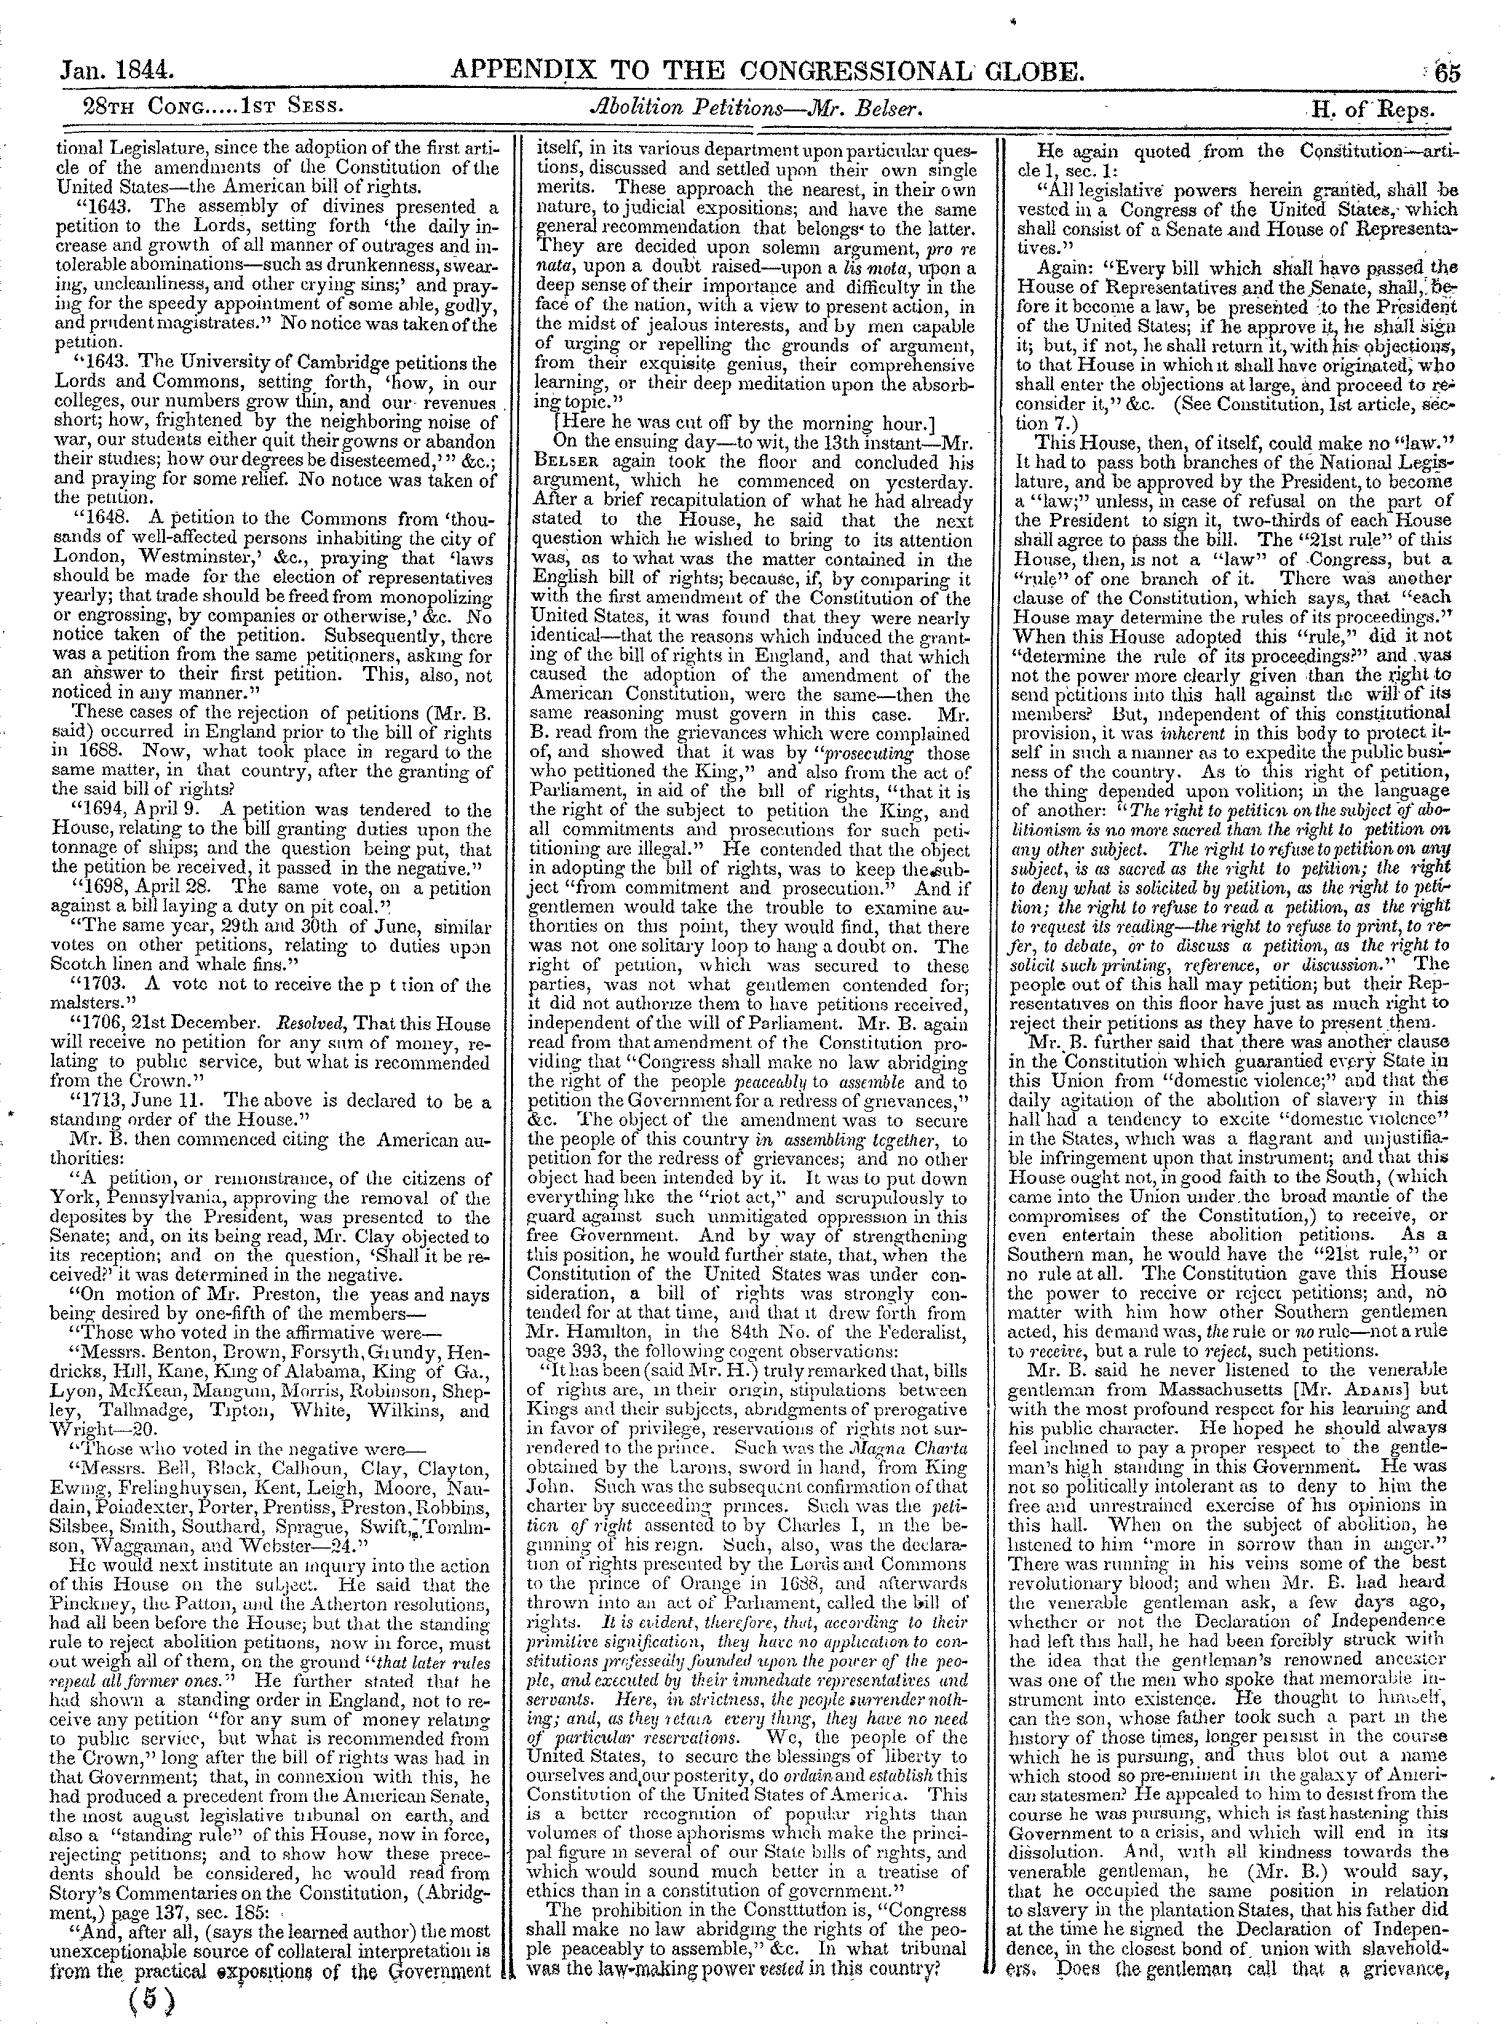 The Congressional Globe, Volume 13, Part 2: Twenty-Eighth Congress, First Session                                                                                                      65